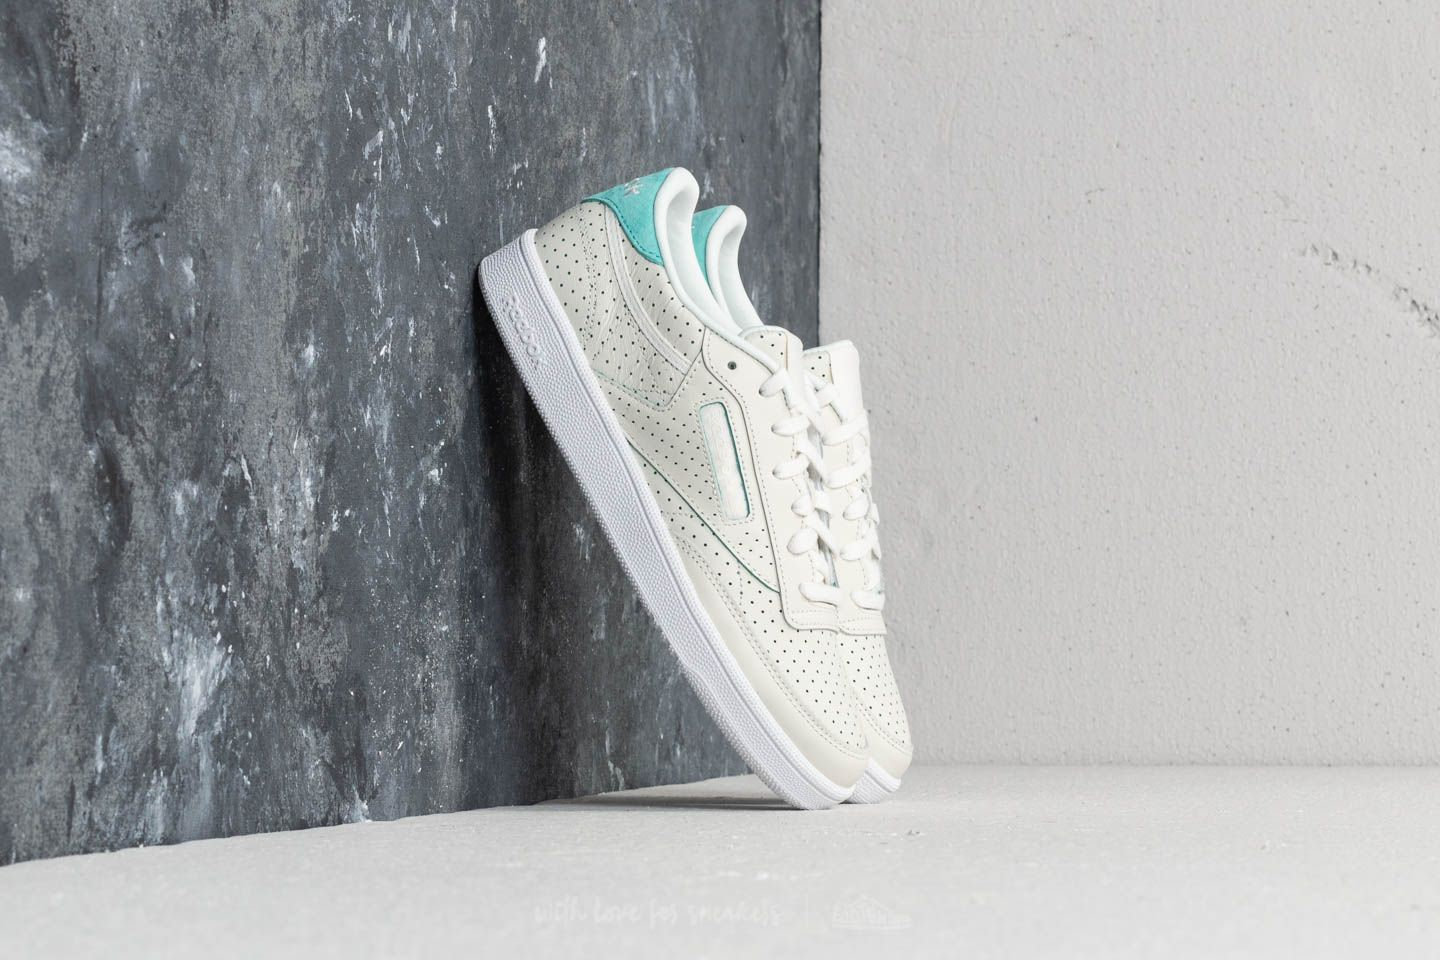 Reebok Club C 85 Popped Perf Chalk/ Turquoise/ White